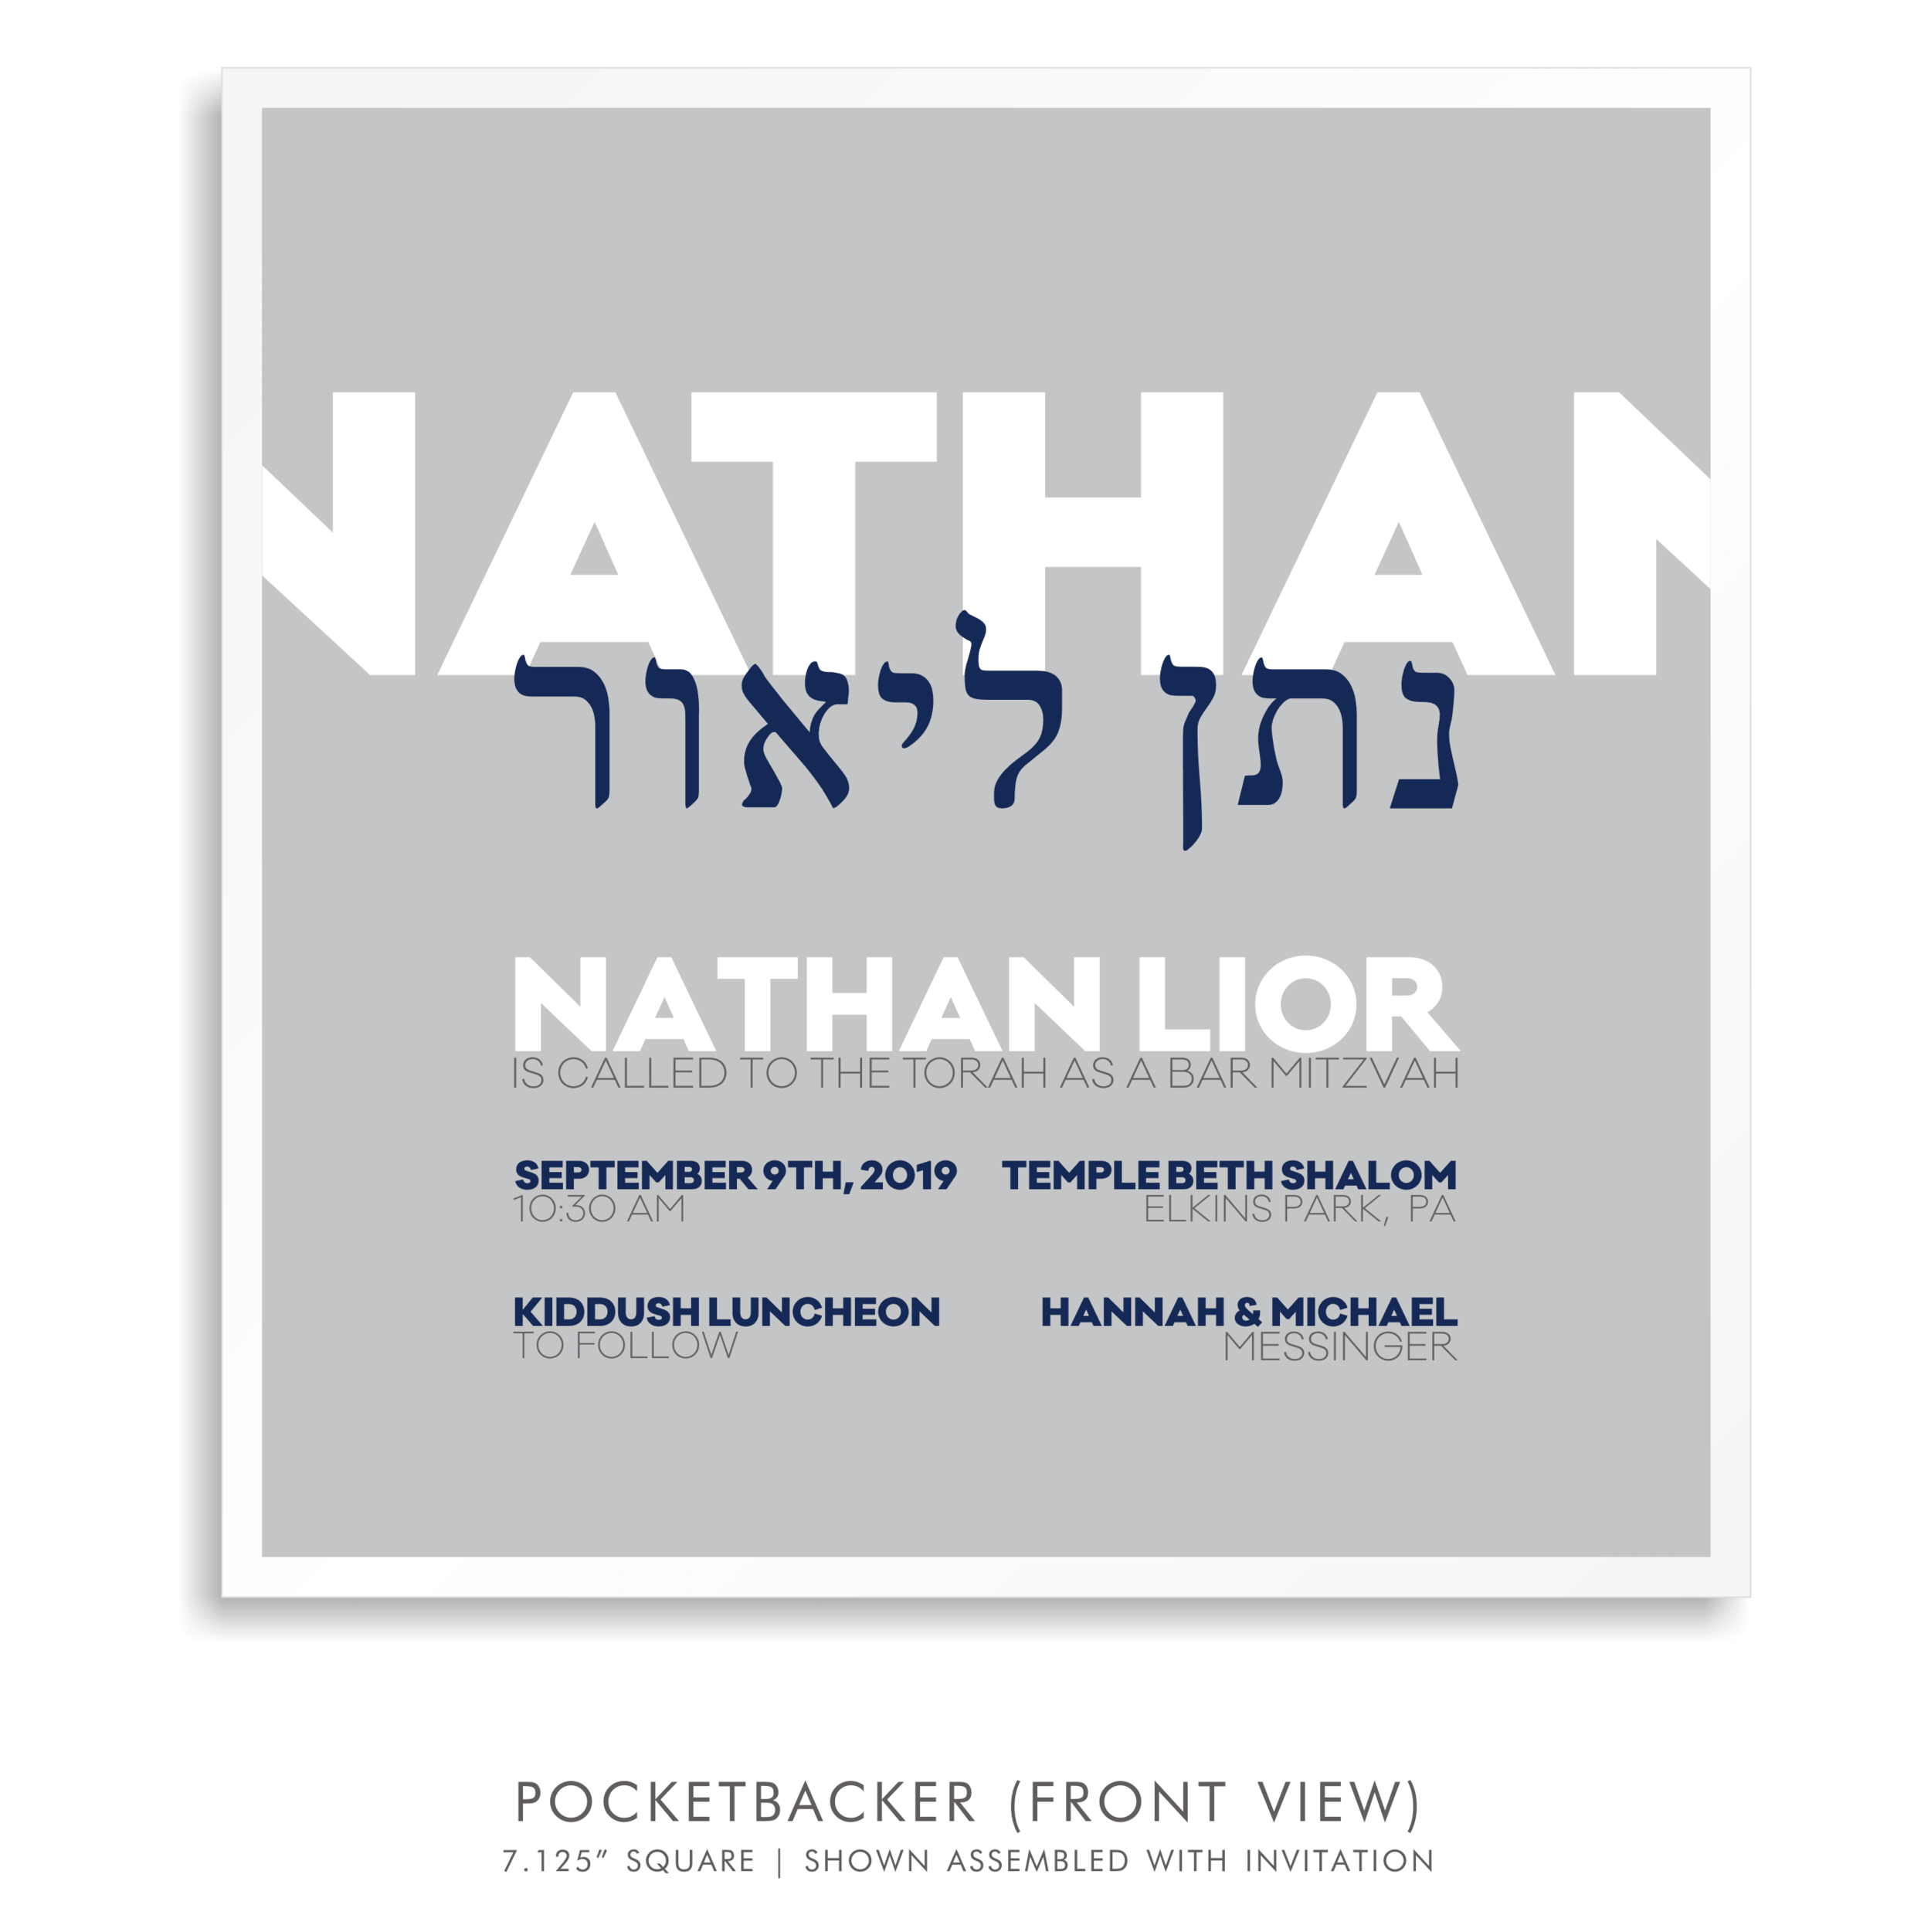 09 BAT MITZVAH INVITE SUITE 5263 POCKET BACKER FRONT VIEW.png